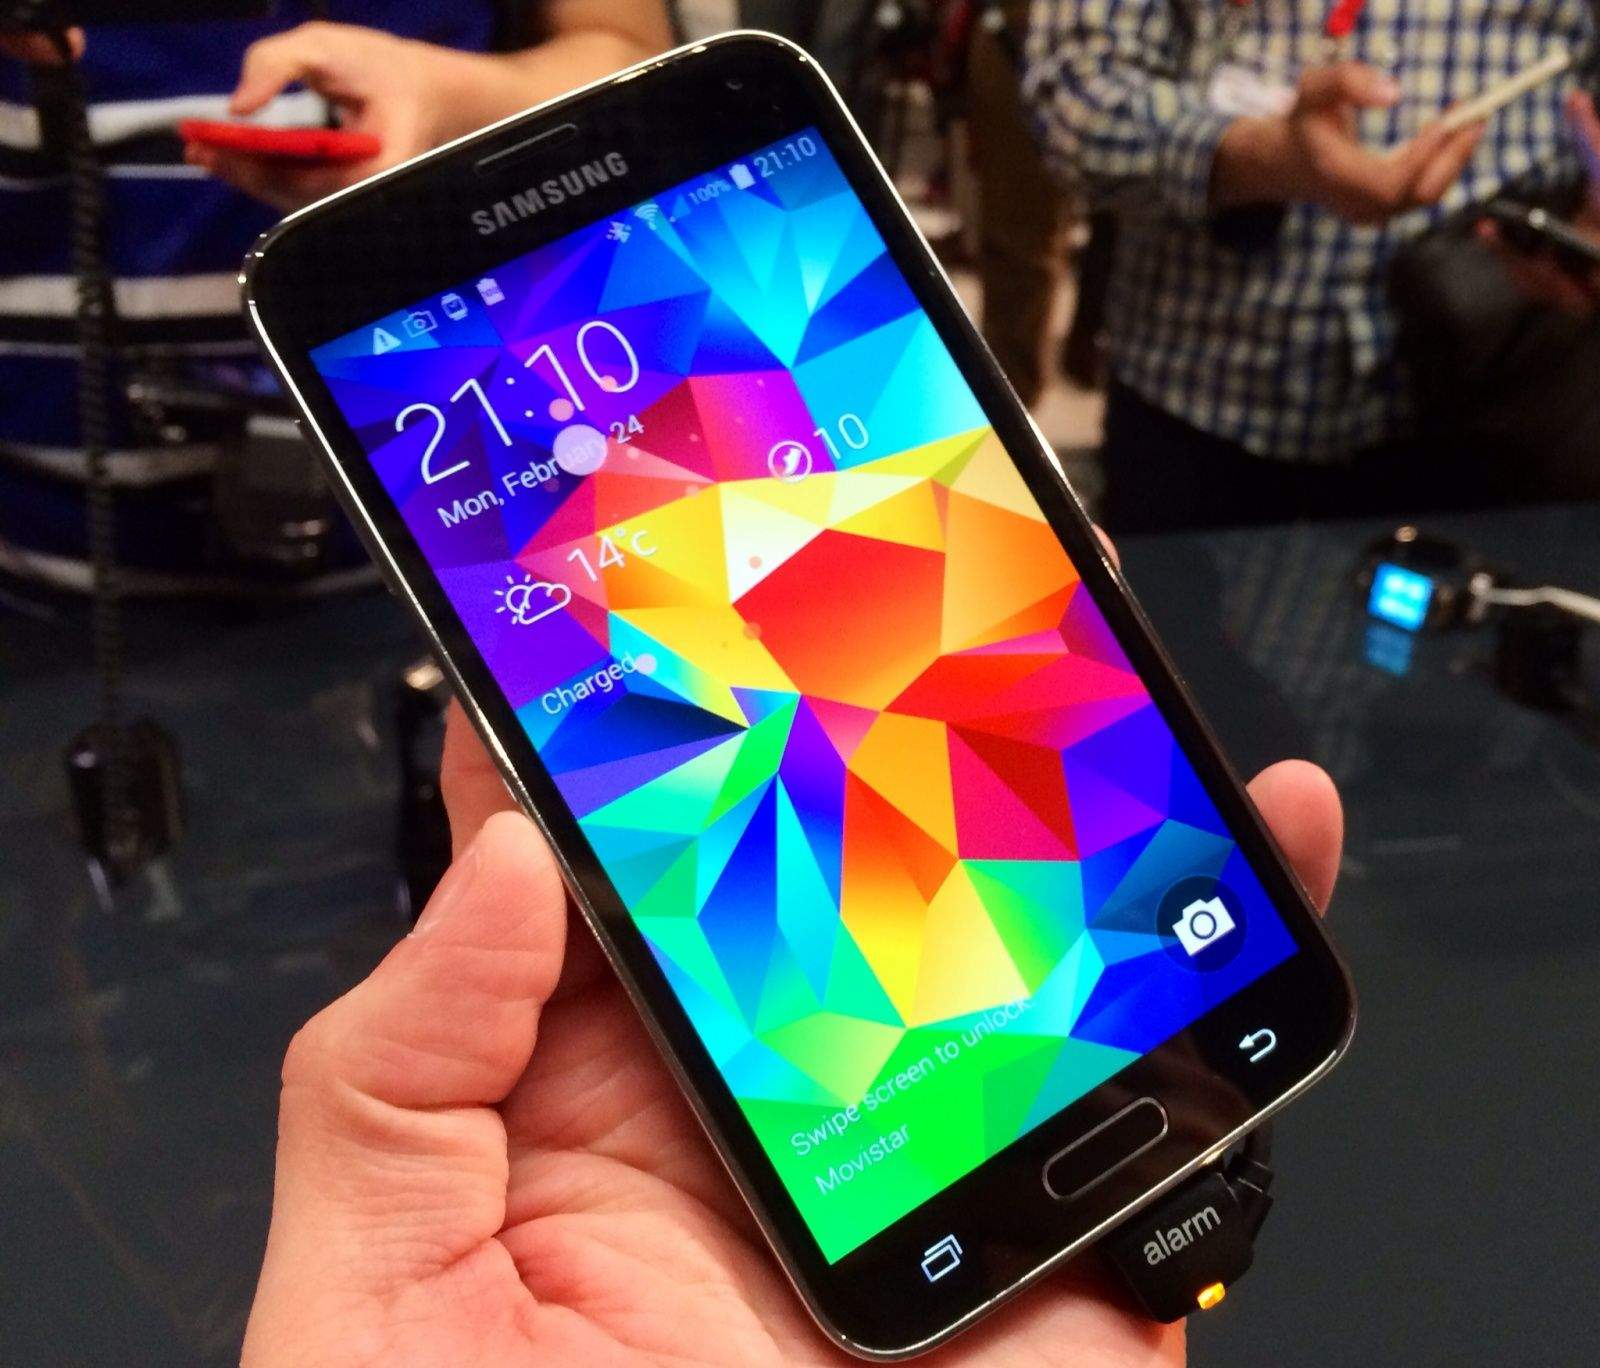 Cult of Android - Galaxy S5's First Official ROM Now